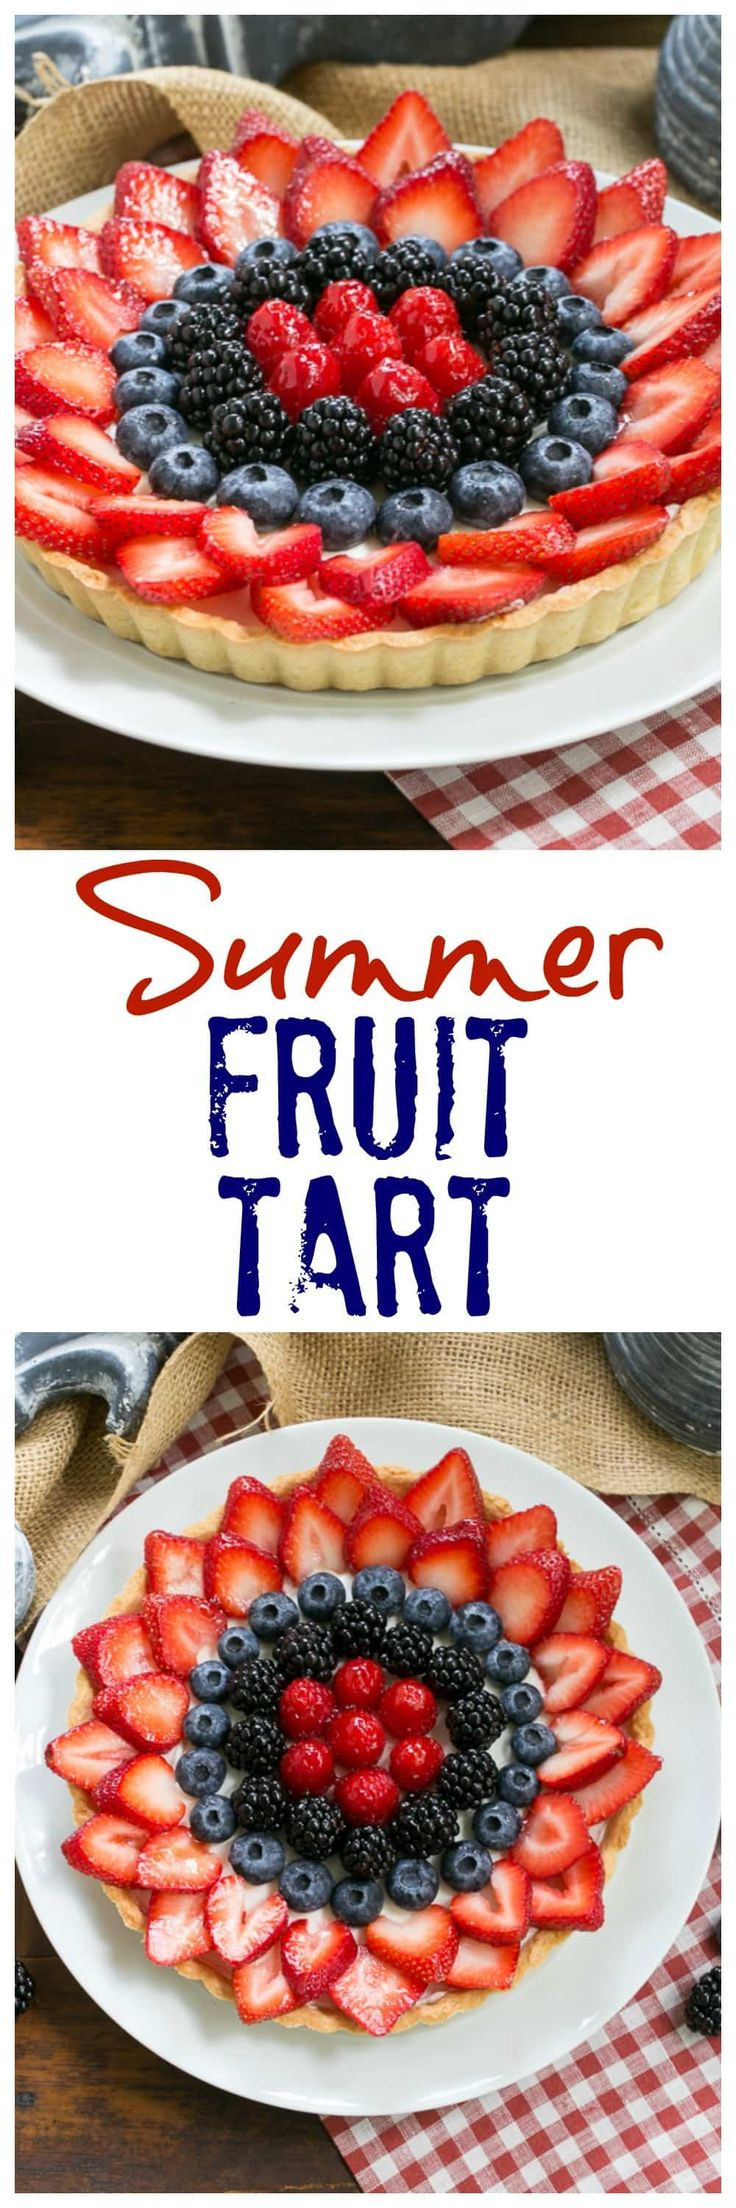 Summer Fruit Tart | Pastry crust with whipped cream and cream cheese filling topped with glorious summer berries @lizzydo